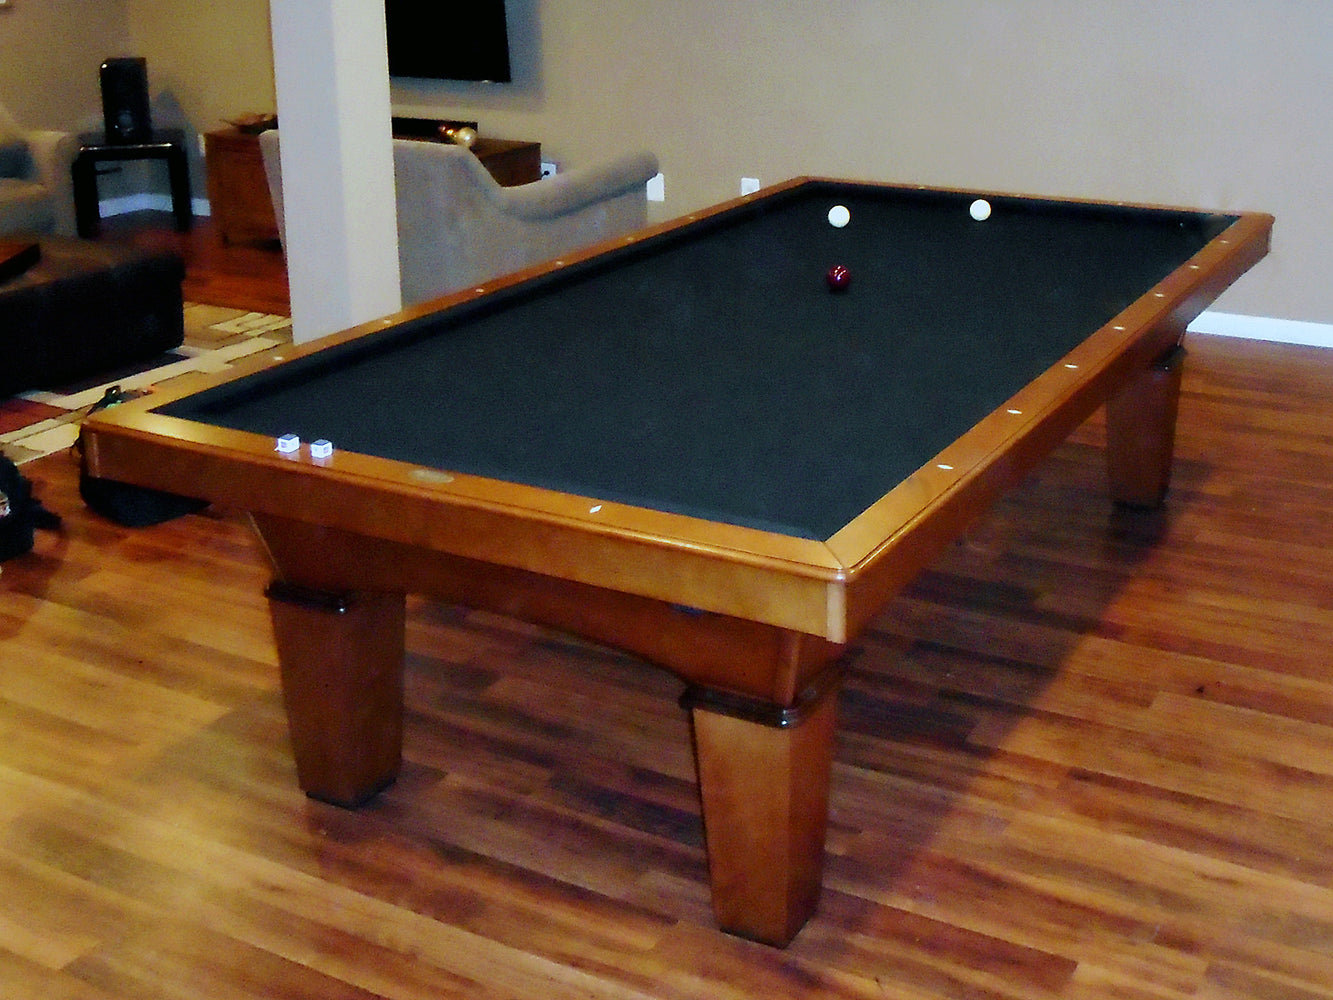 Olhausen Reno Pool Table Carom Rails